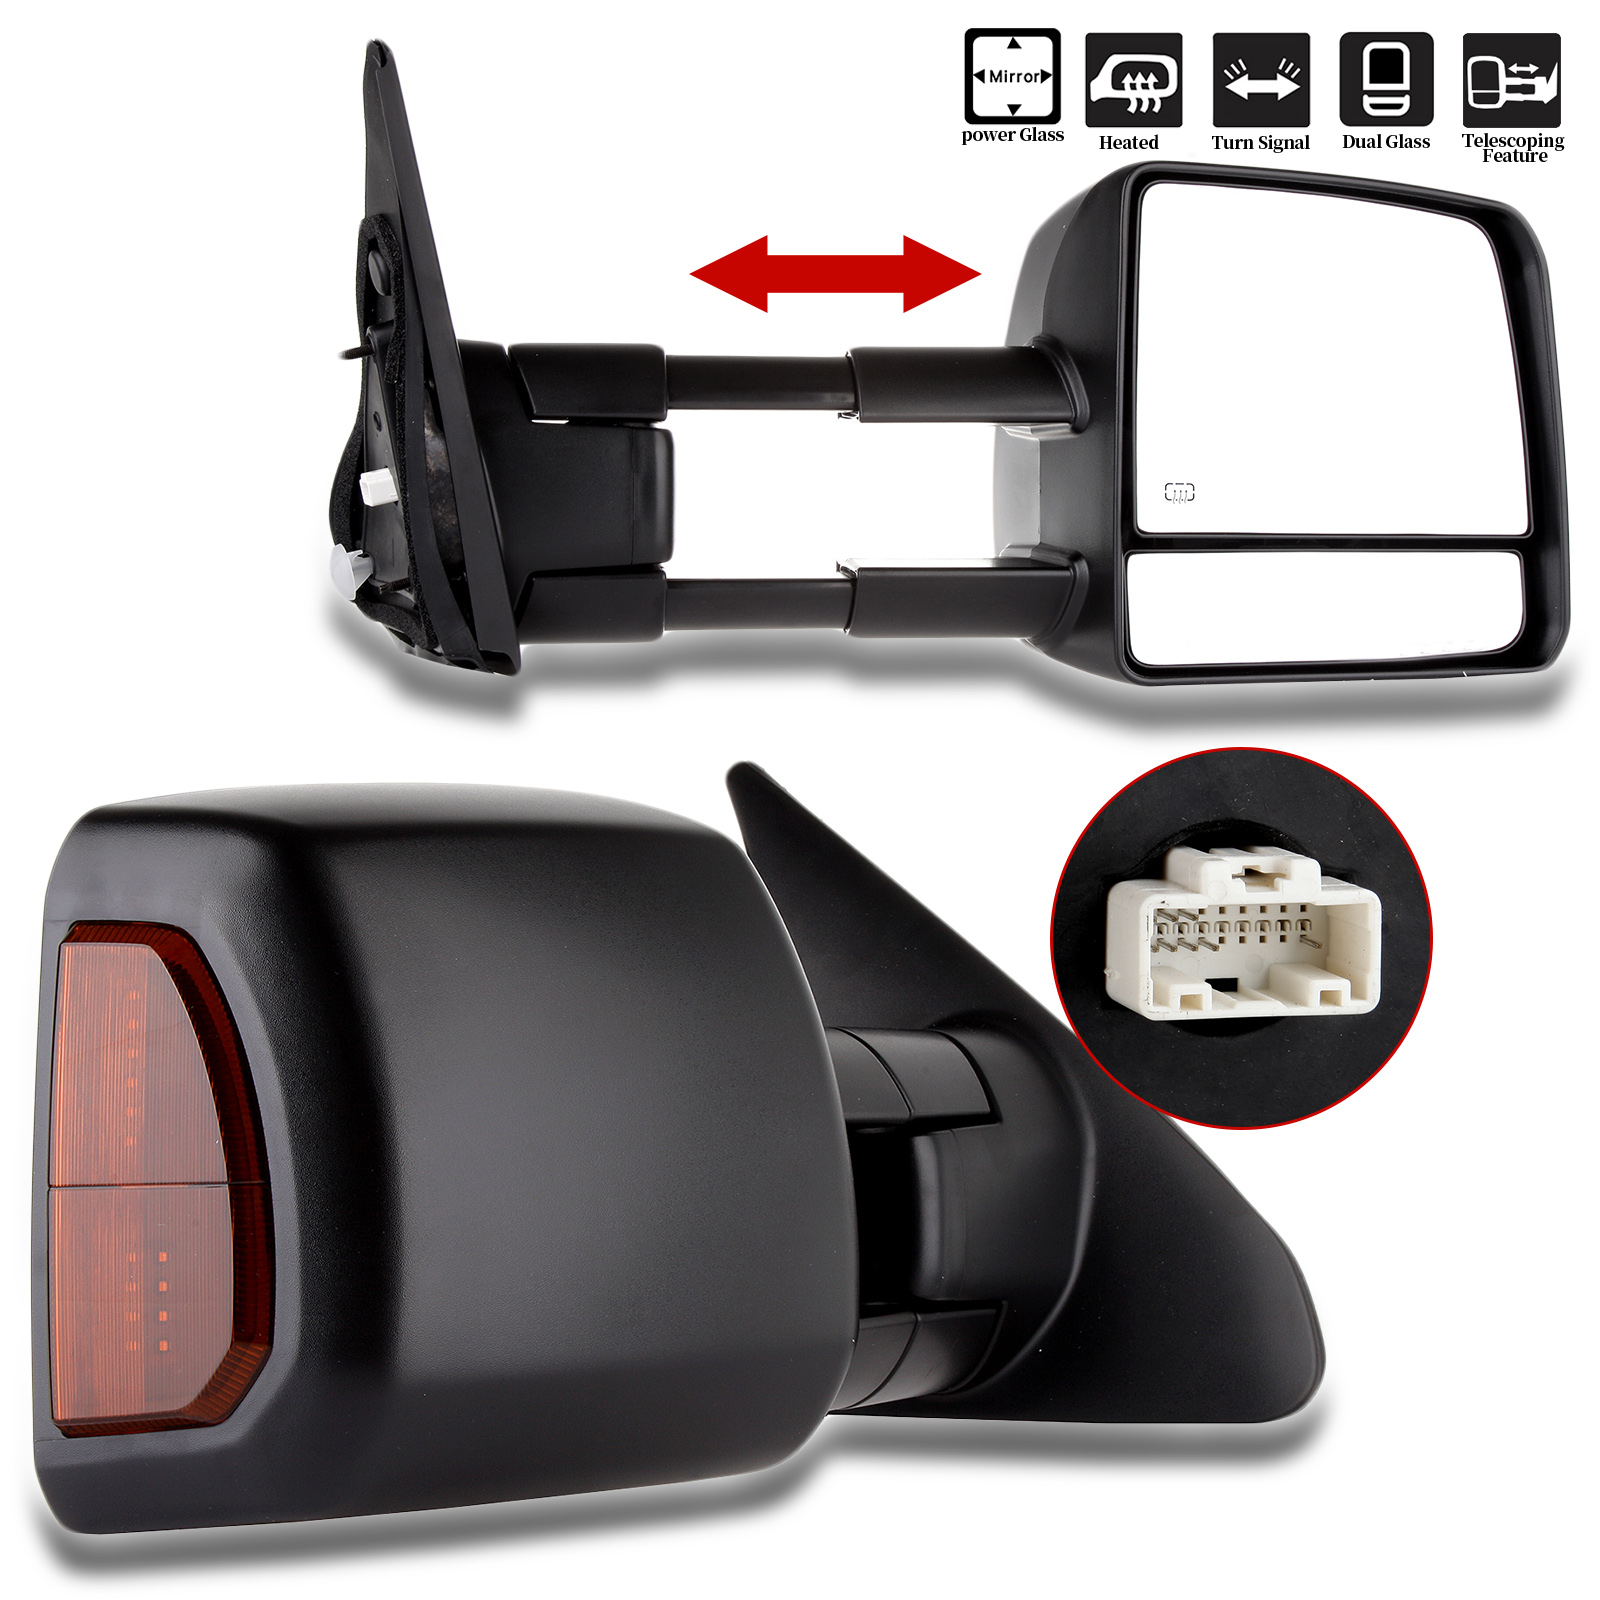 Eccpp power towing heated signal side view mirrors pair left right for 2007 2008 2009 2010 2011 2012 2013 2014 toyota tundra